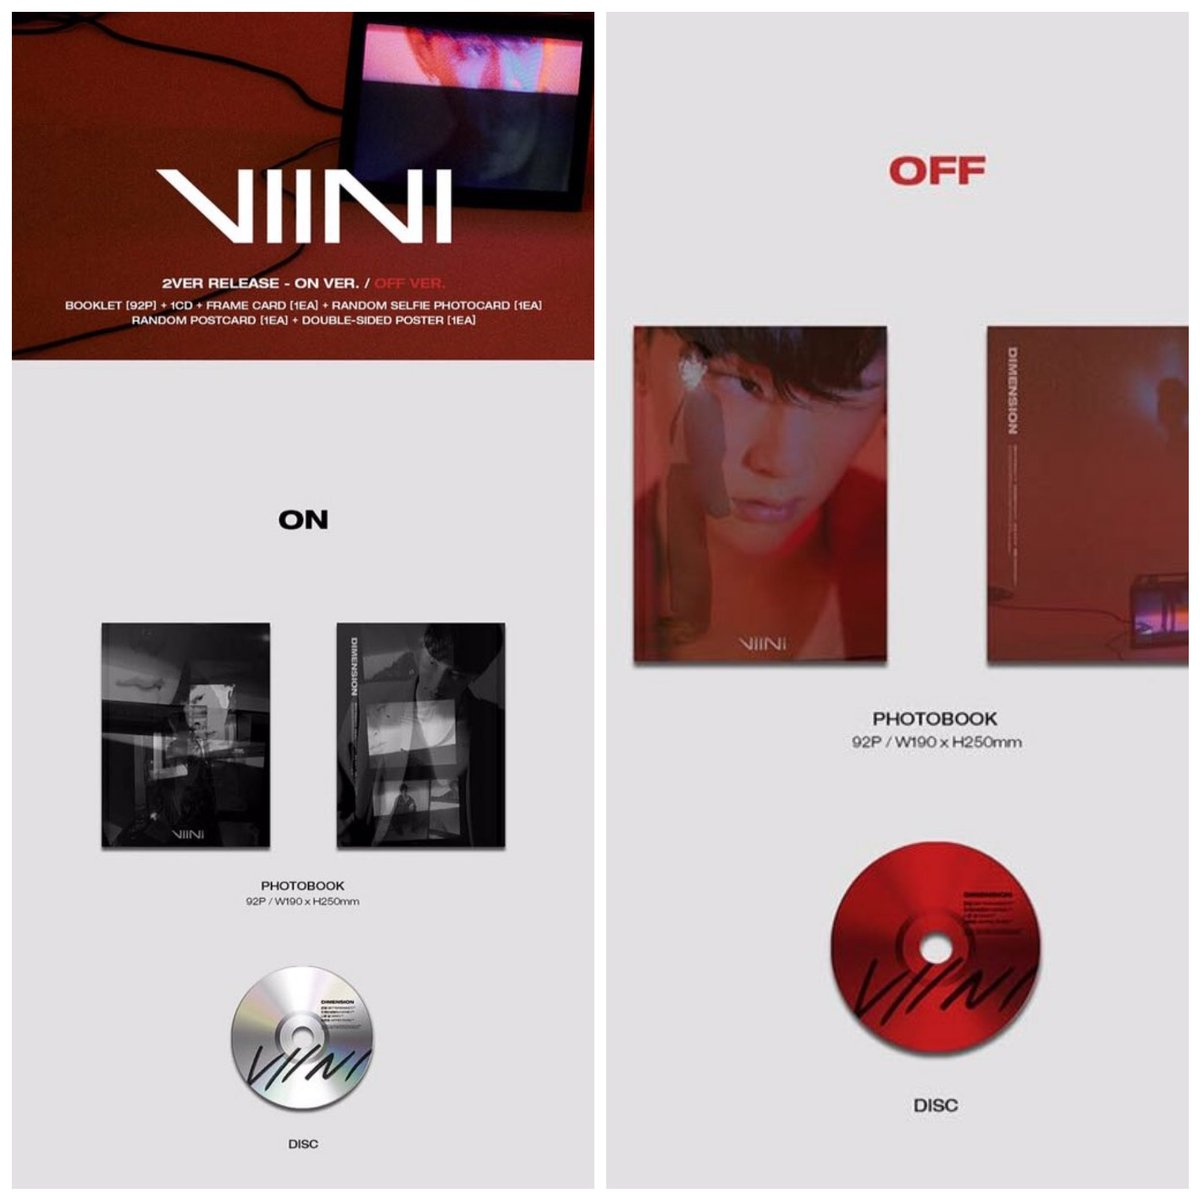 [+62 GIVEAWAY ] to celebrate Kwon hyunbin solo debut)   Gift:  1 album VIINI (random version include photocard & etc) 1 Eau De Toilette Pull & Bear New York (small)   Rules:  - RT & like this tweet - tell me ur fav song from Dimension's album & give me a reason  End: 310819<br>http://pic.twitter.com/SNO694Kh6x